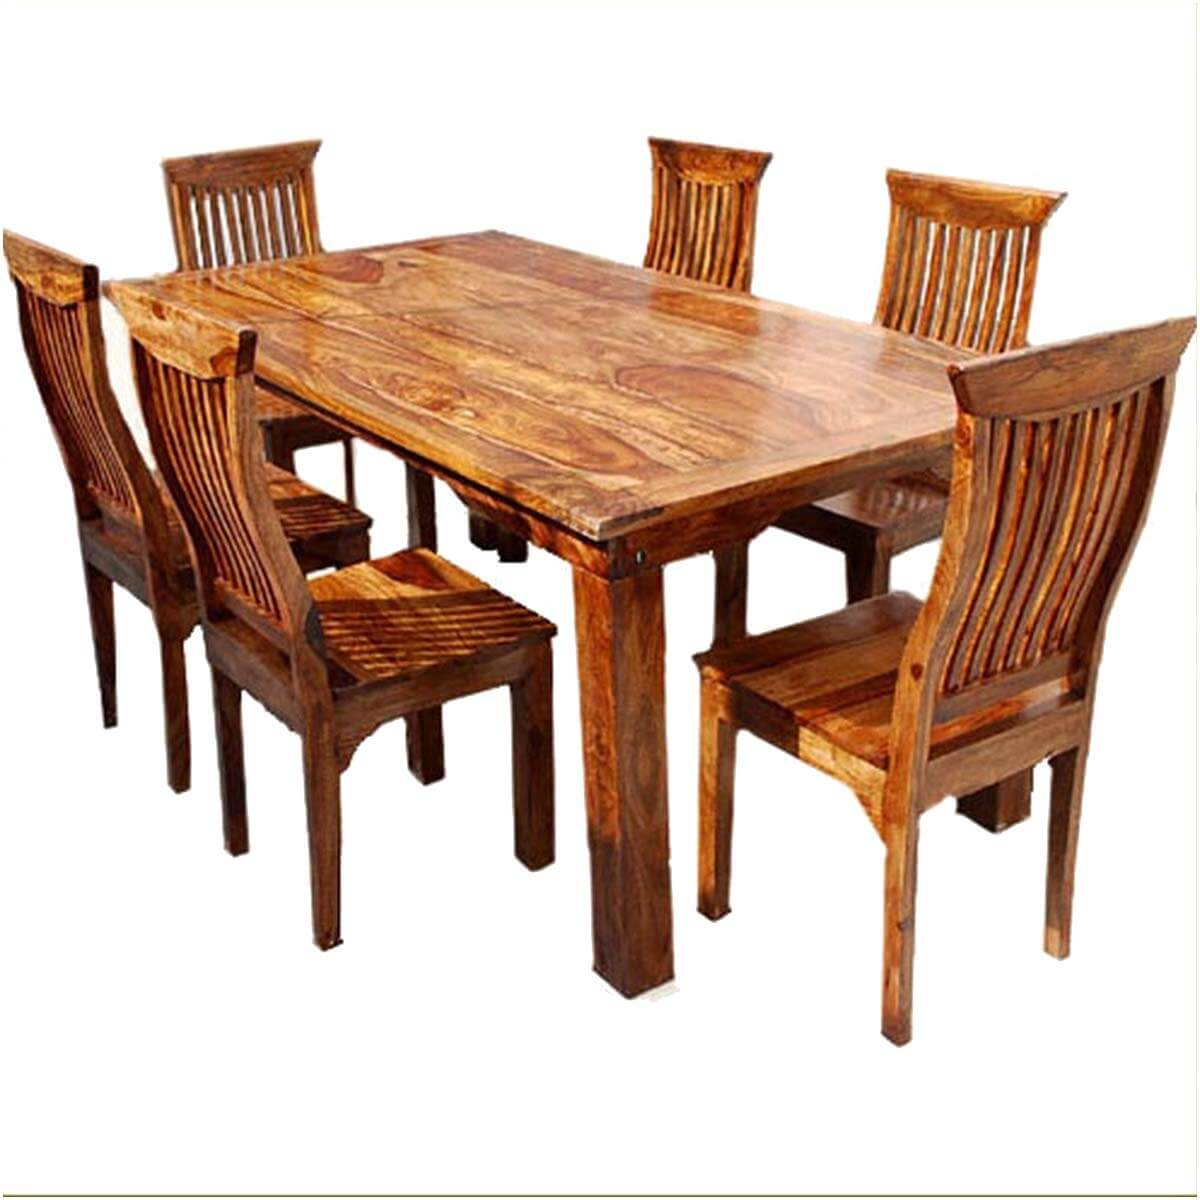 Dallas ranch solid wood rustic dining table chairs hutch set for Unique wood dining room tables